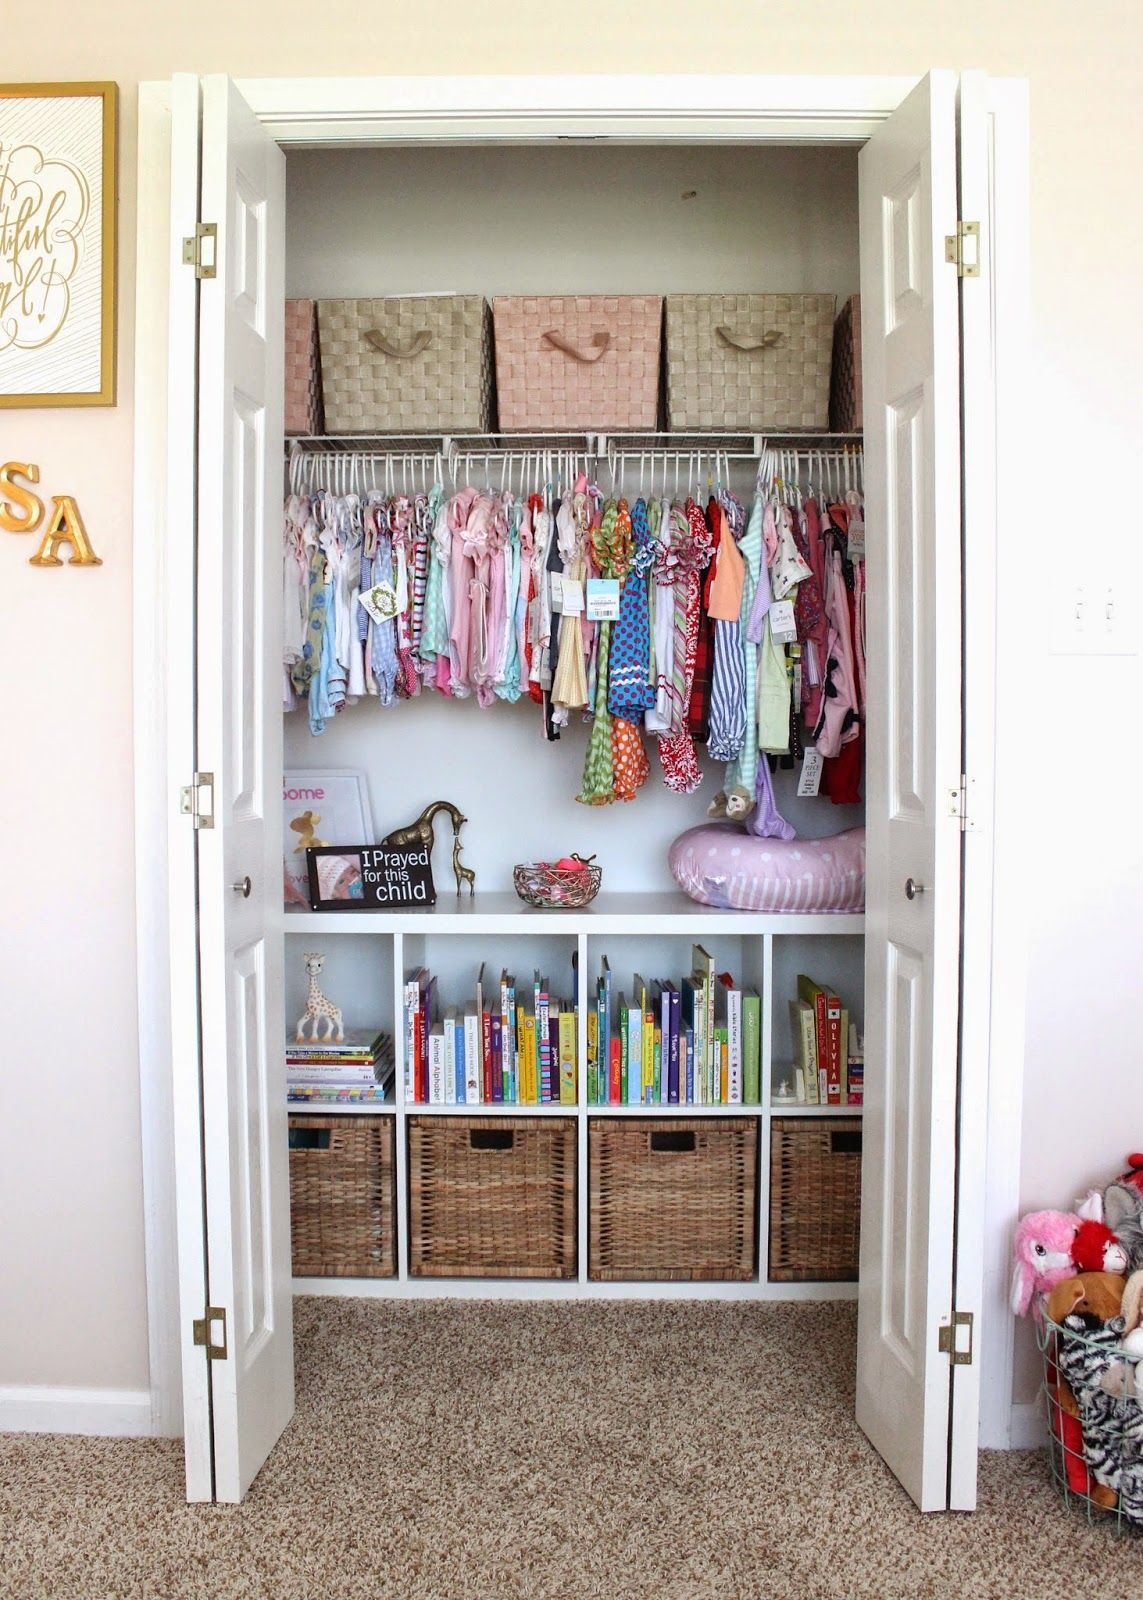 Are You Looking For Some Fantastic Ideas Organizing Kids Bedrooms From Closet Organization To